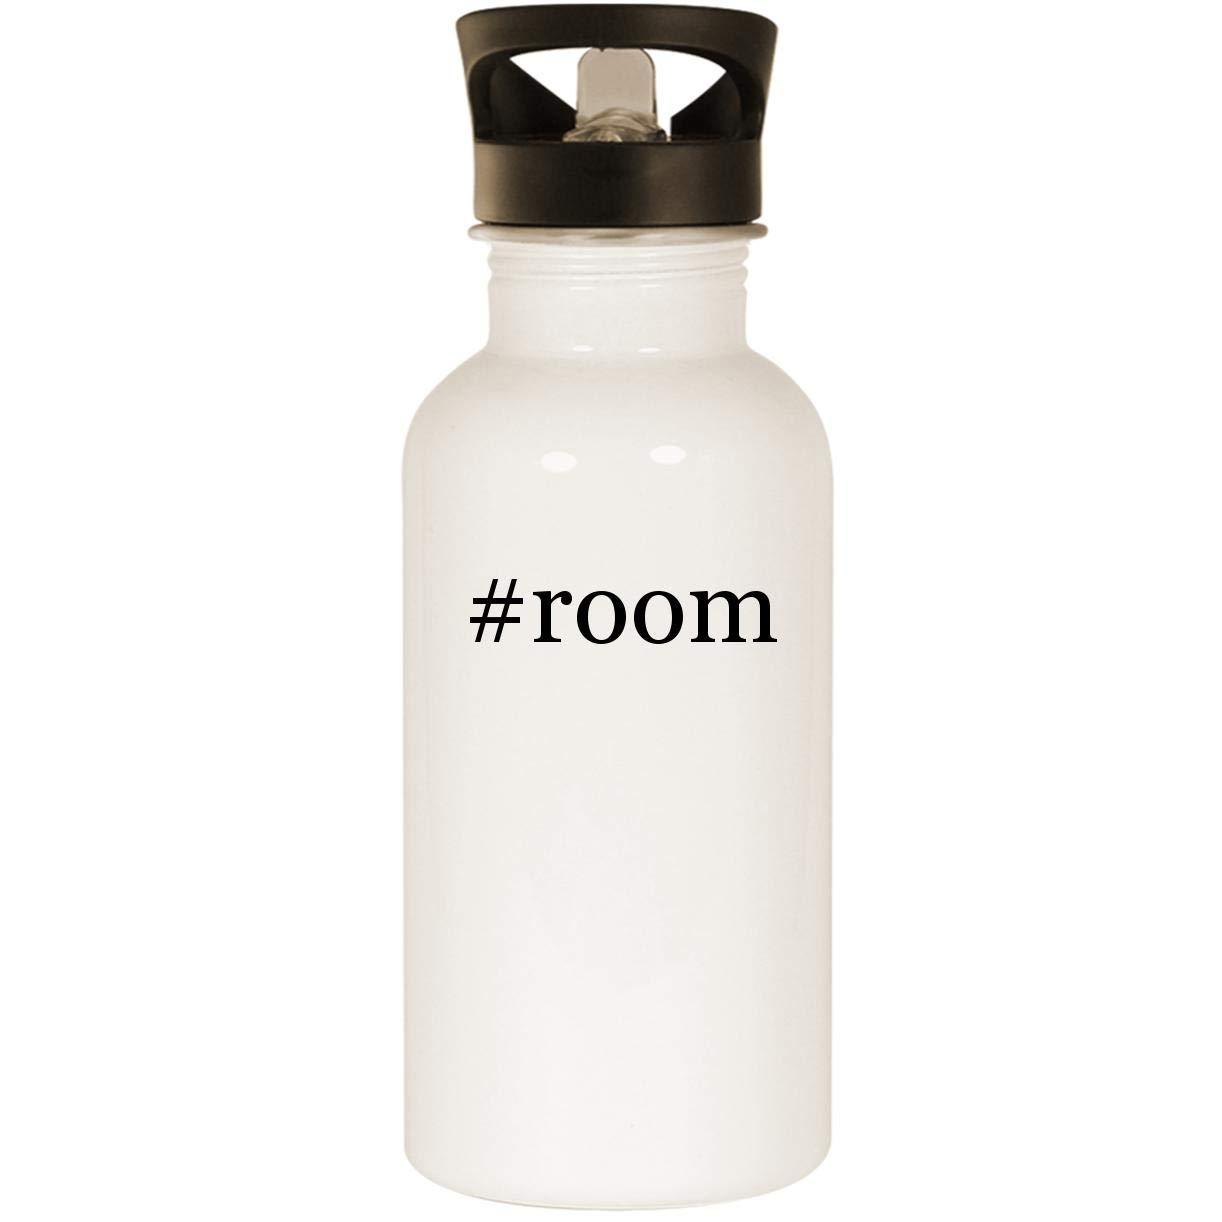 #room - Stainless Steel 20oz Road Ready Water Bottle, White